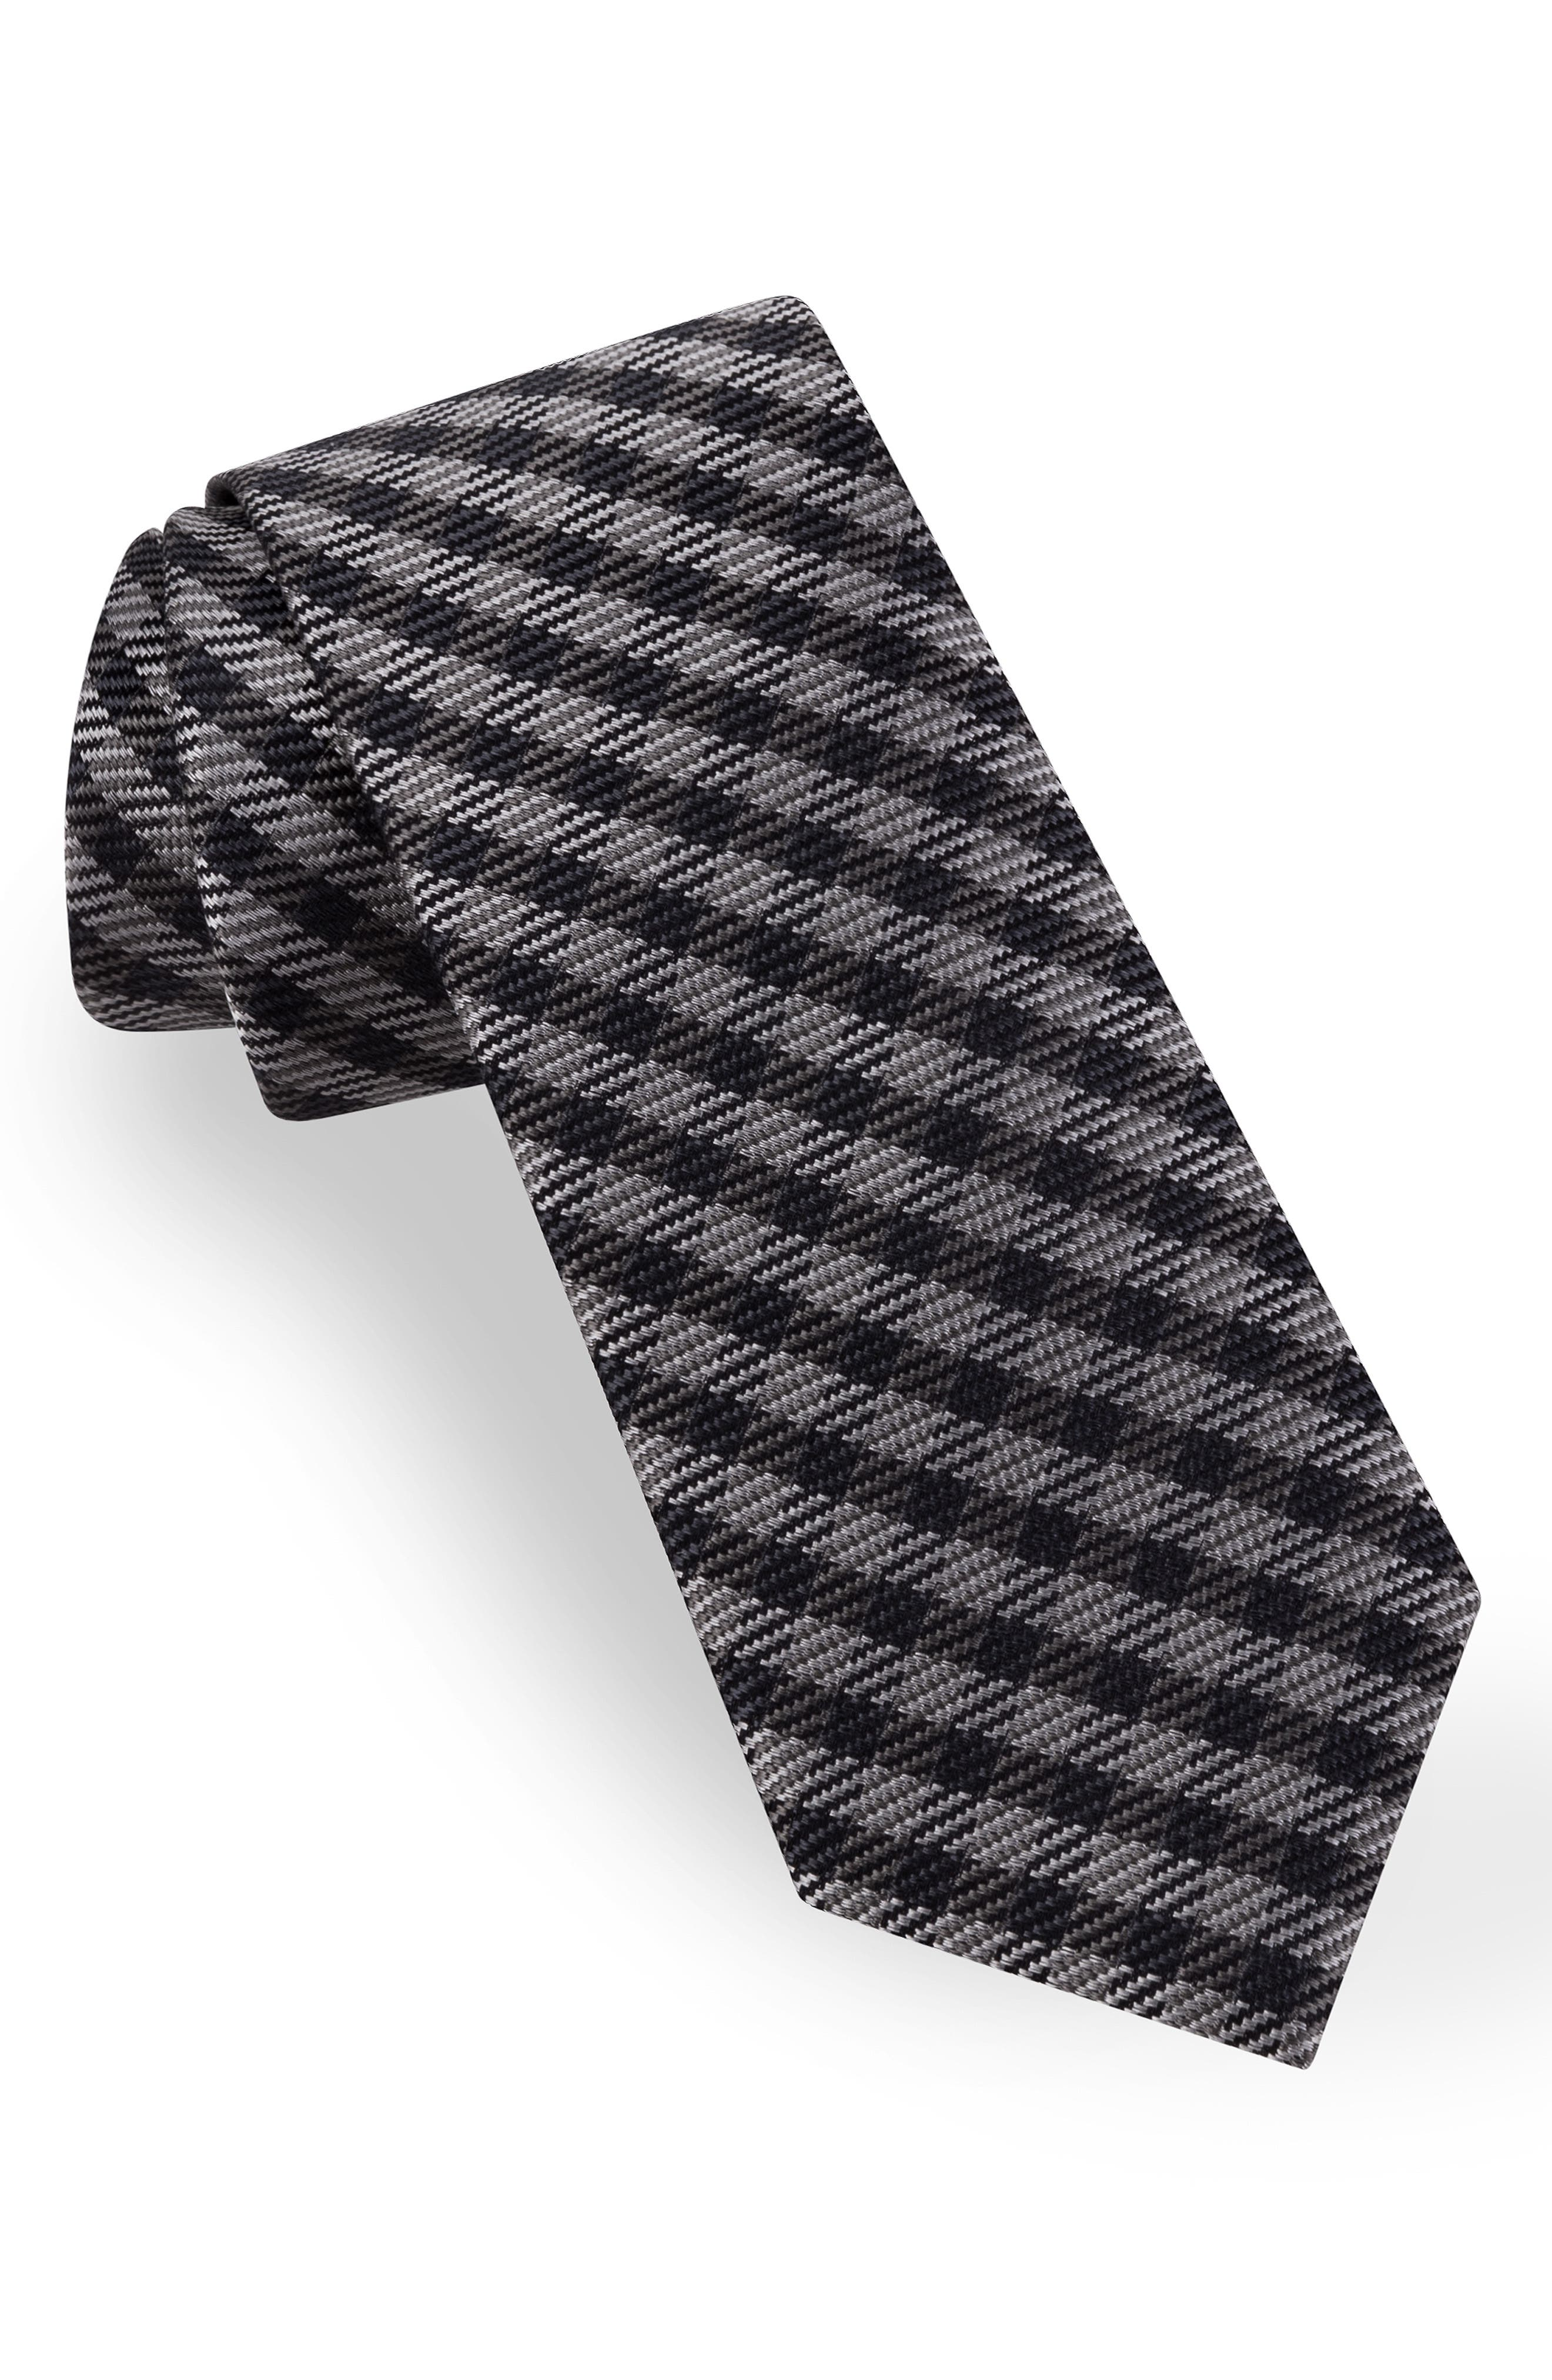 TED BAKER LONDON Check Silk Tie, Main, color, GRAY